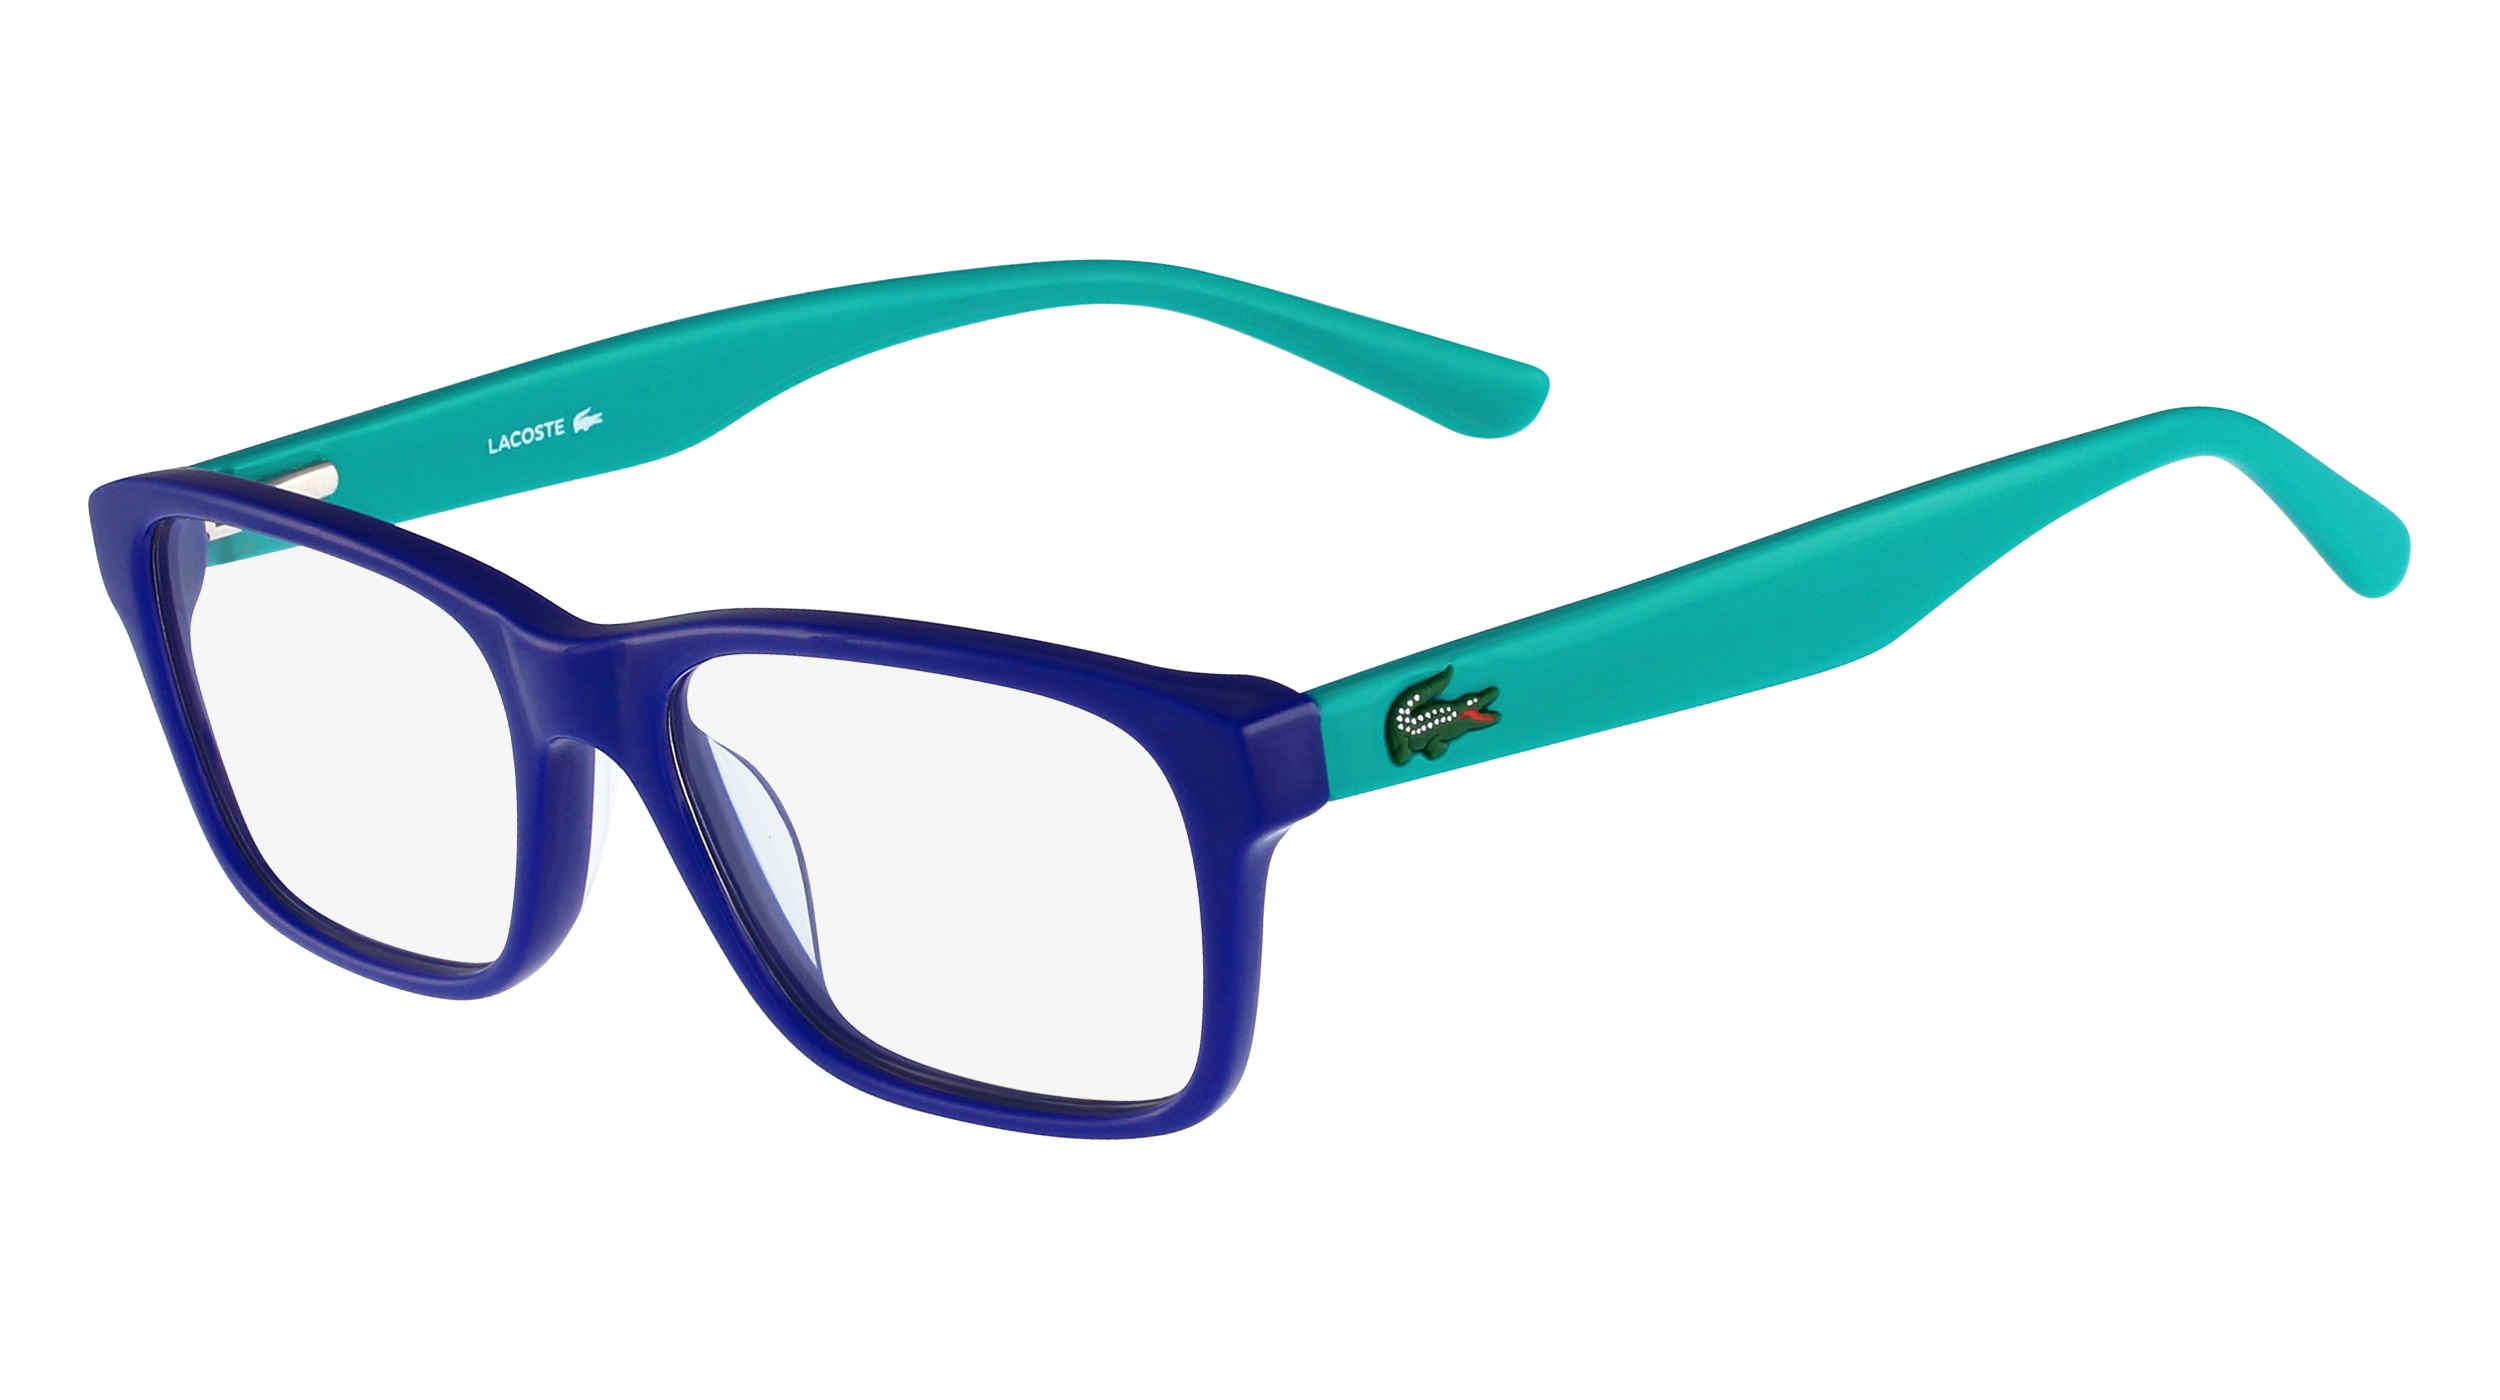 8477cc76d97 Kids Glasses - Boy Lacoste - Optiwow